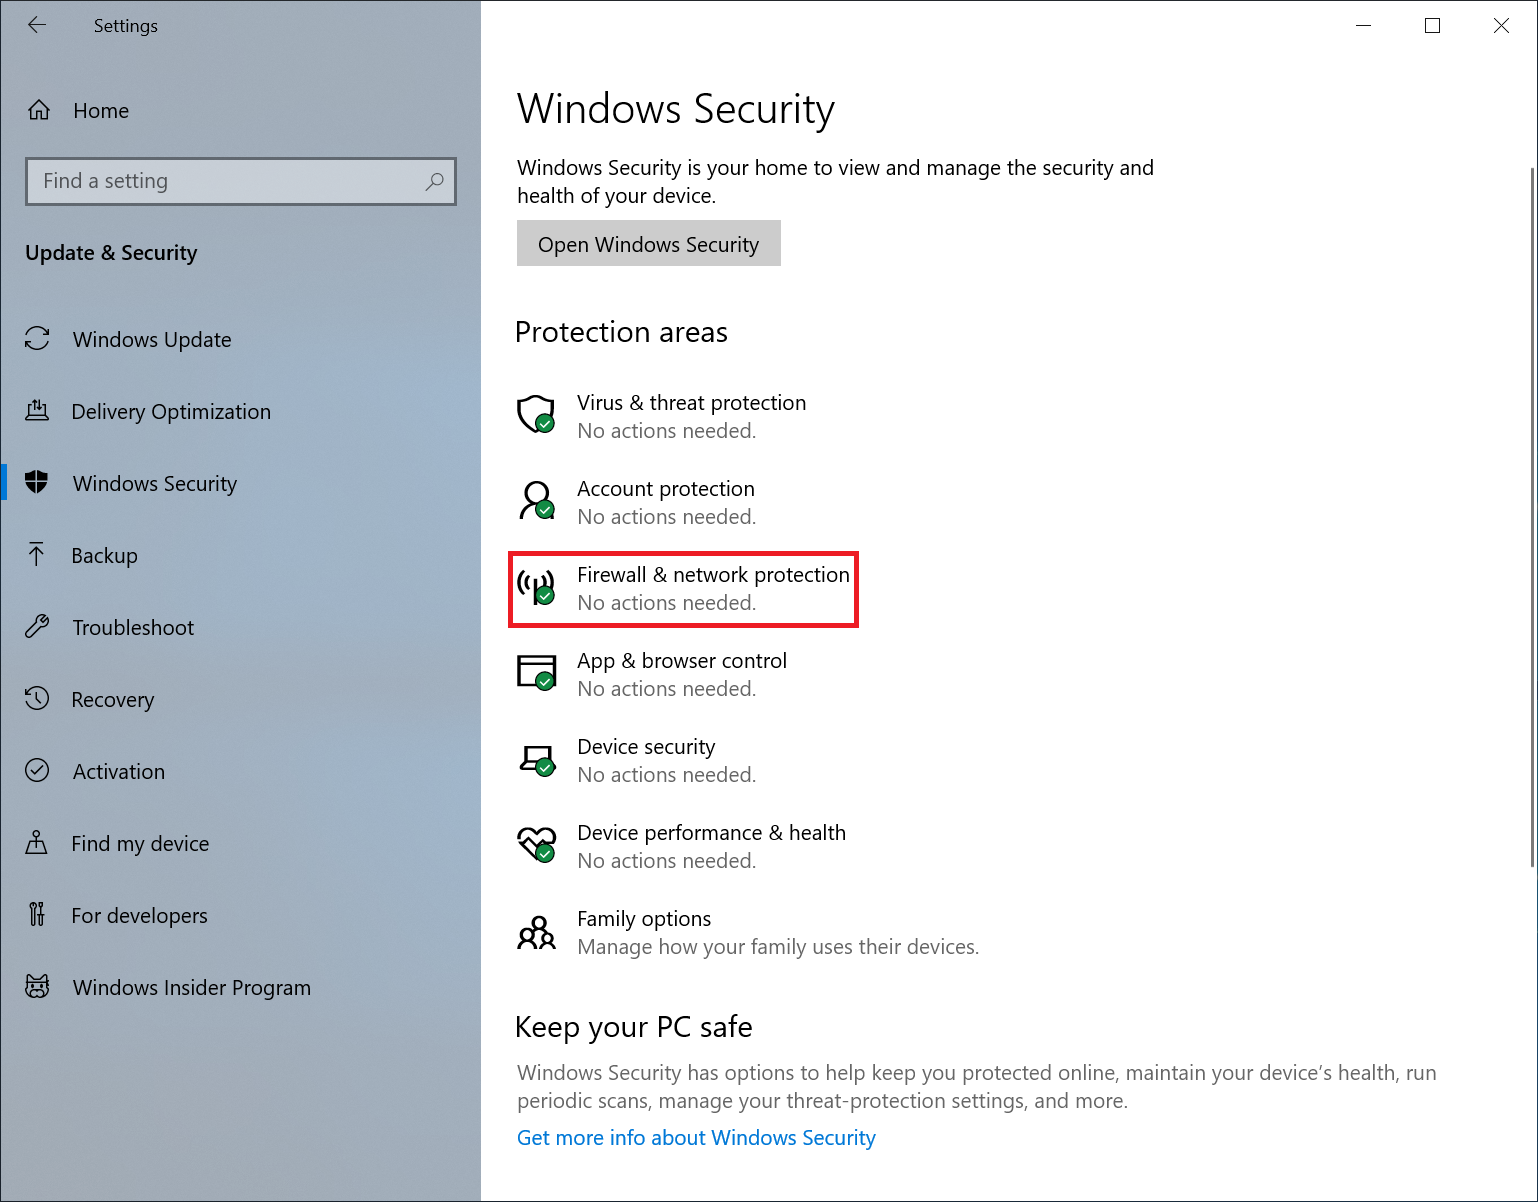 Configuring Windows 10 Network and Security Settings | Sonos